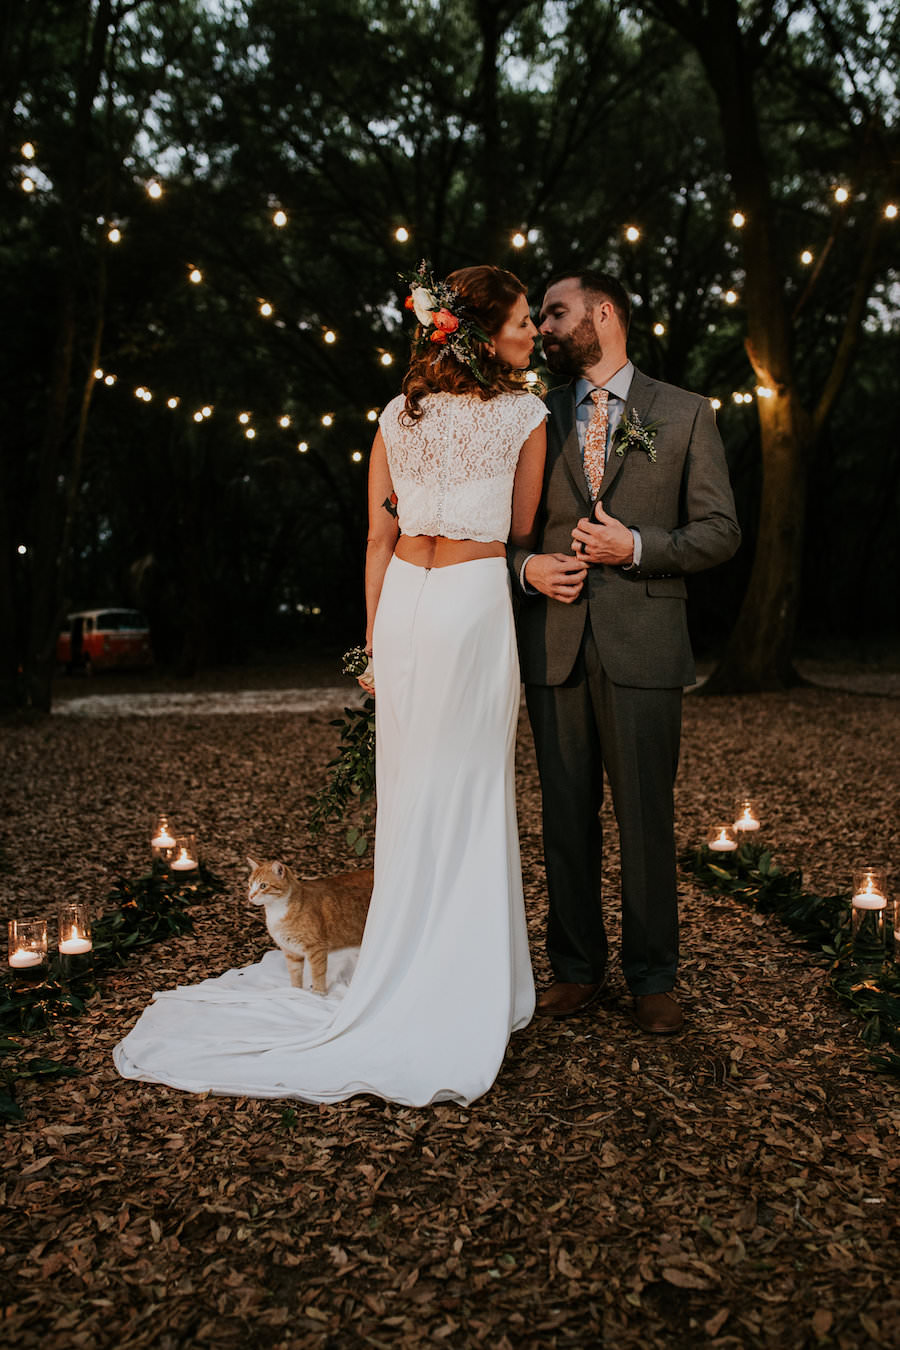 Bride and Groom Wedding Portrait with in Forest with Market String Lights and Orange Cat   Retro Vintage Boho Wedding Inspiration   Planner Glitz Events   Outdoor Venue Casa Lantana   Lighting by Gabro Event Services